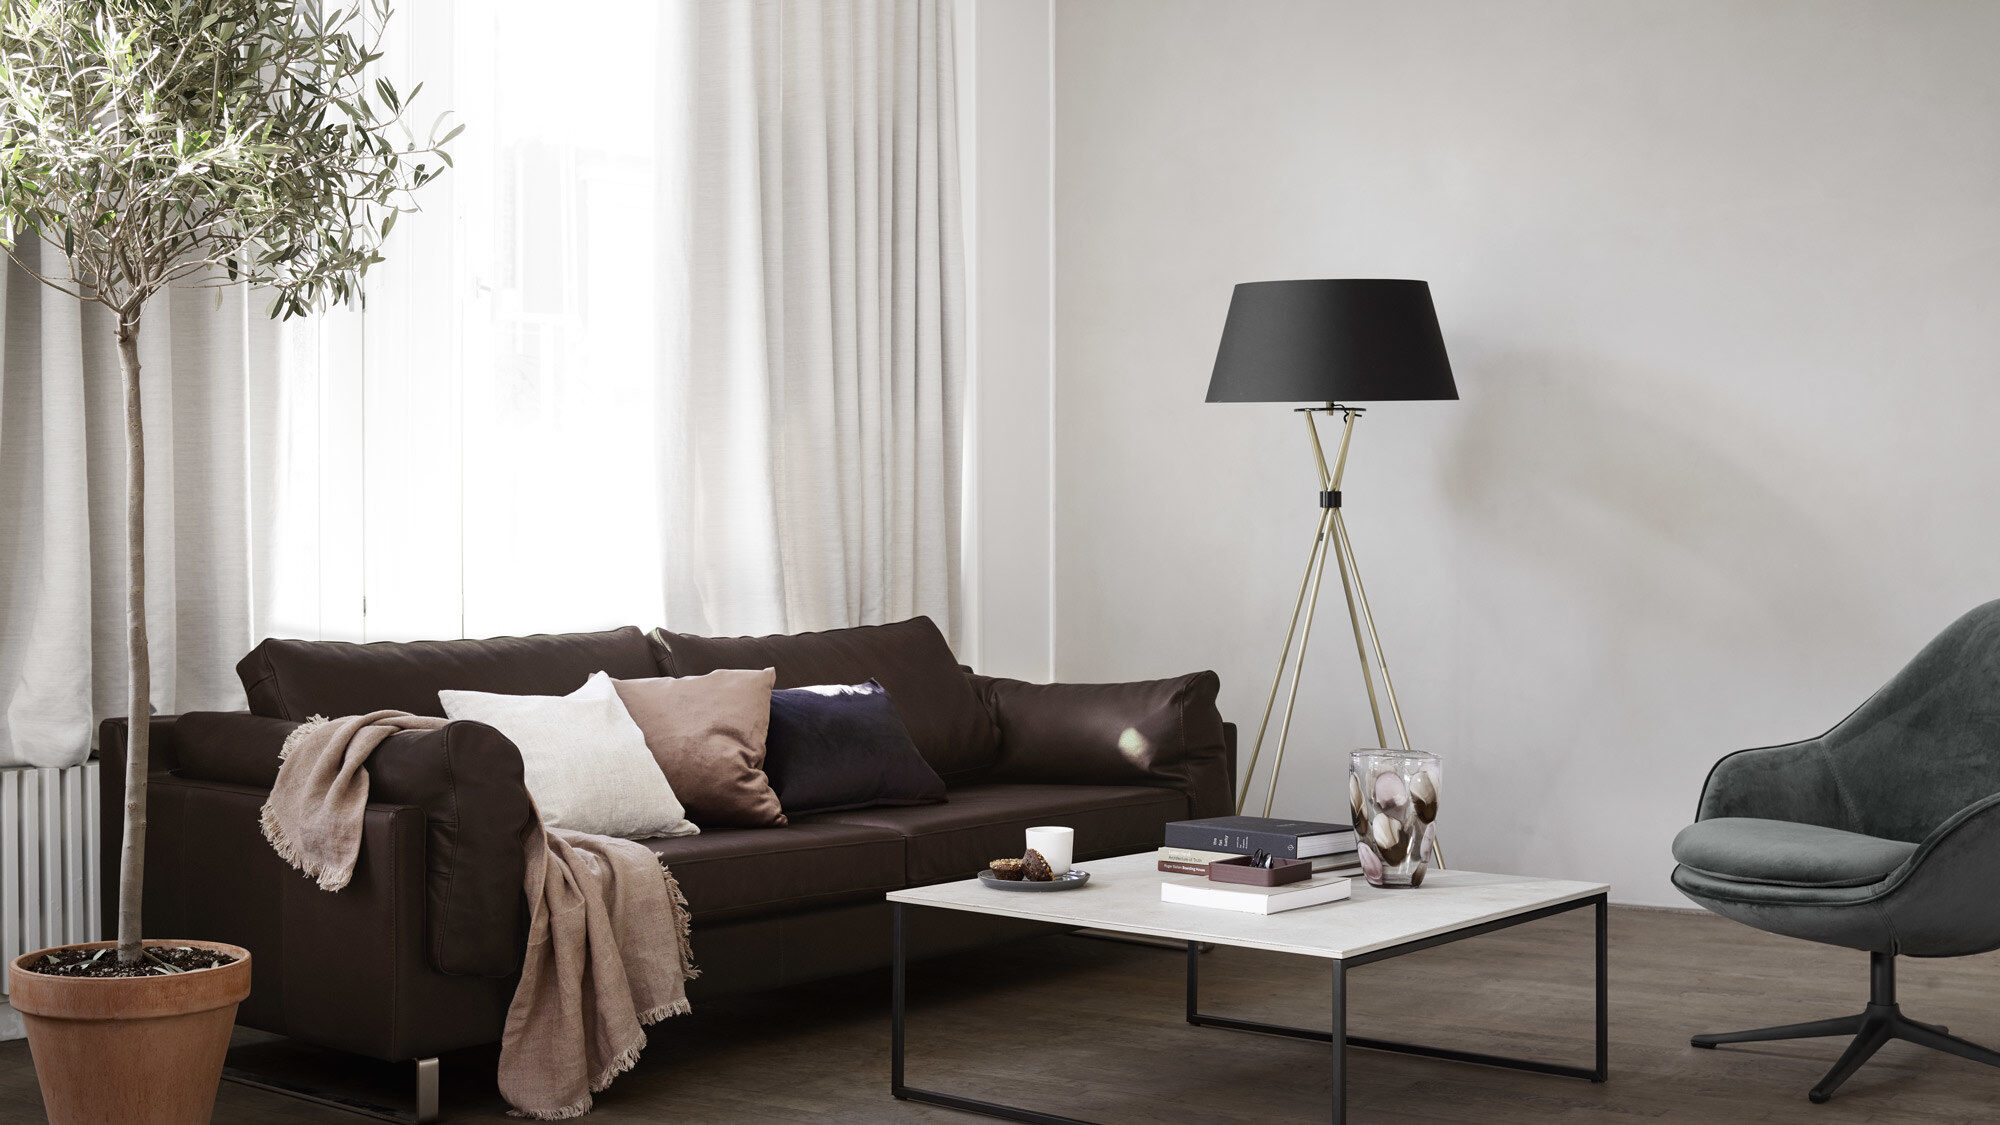 Lamps - Outrigger floor lamp